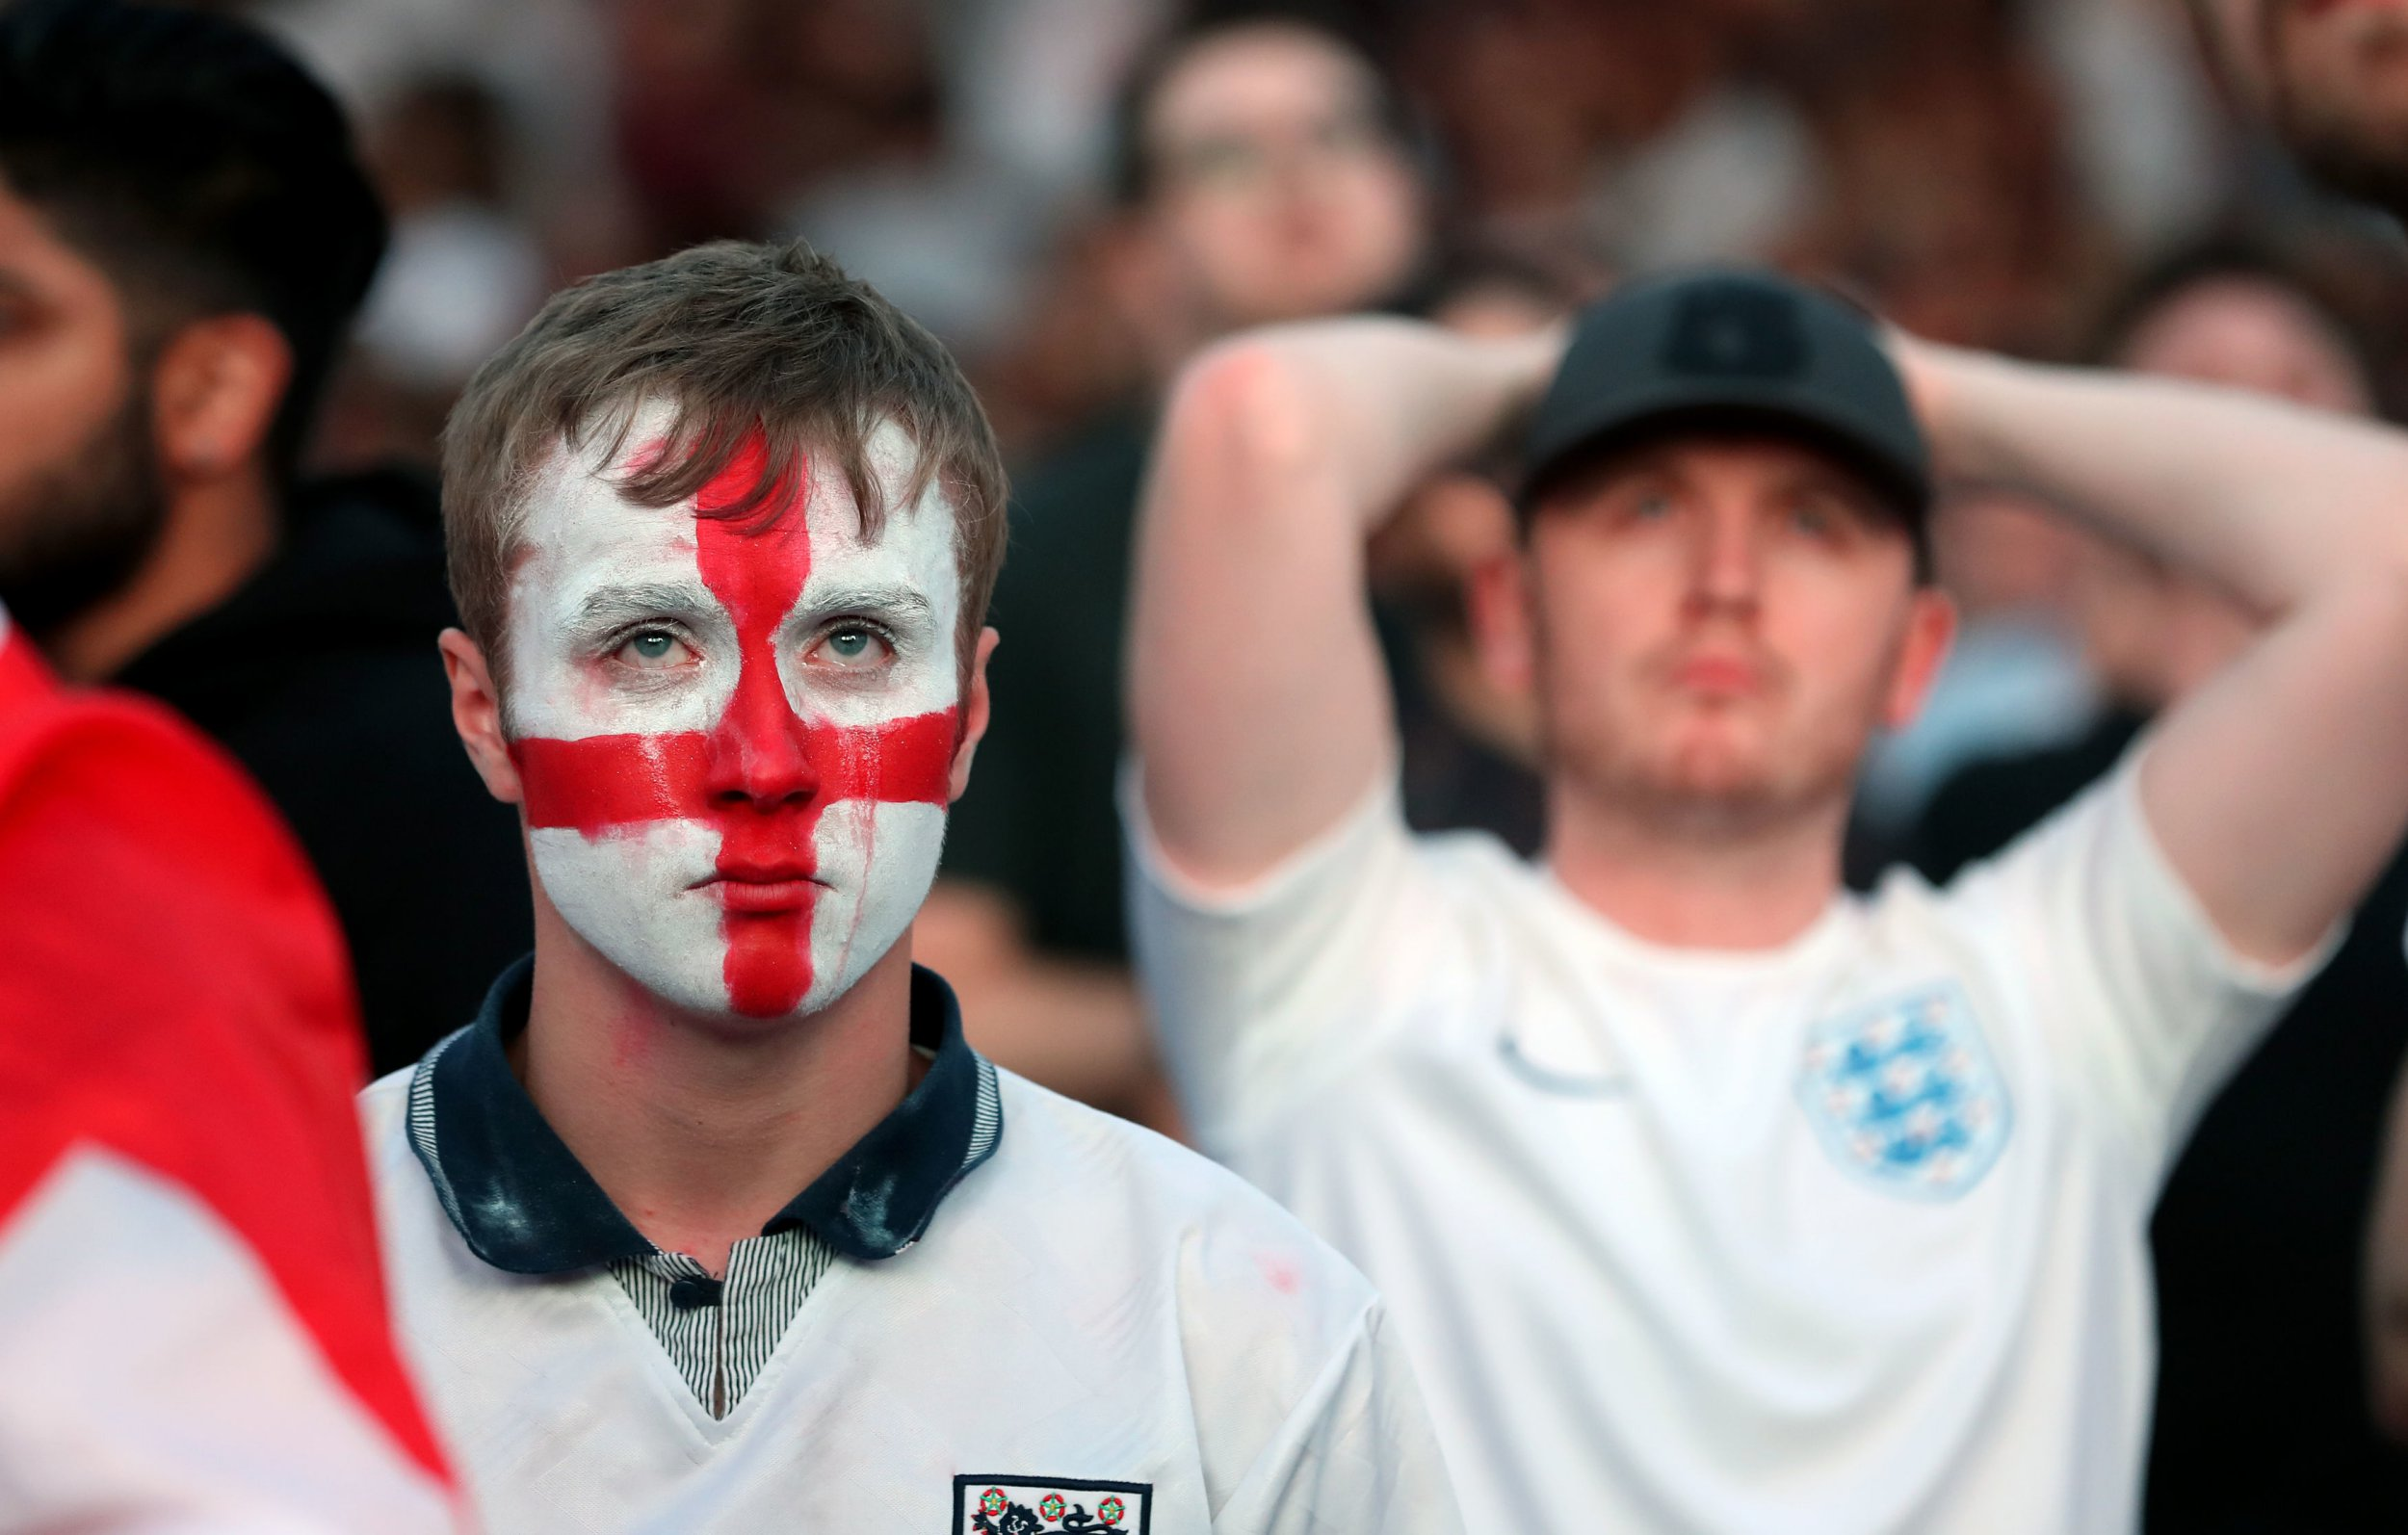 Fans are dejected following England's loss to Croatia in the FIFA World Cup semi final pictured at the Castlefield Bowl, Manchester. PRESS ASSOCIATION Photo. Picture date: Wednesday July 11, 2018. See PA story WORLDCUP England Fans. Photo credit should read: Martin Rickett/PA Wire